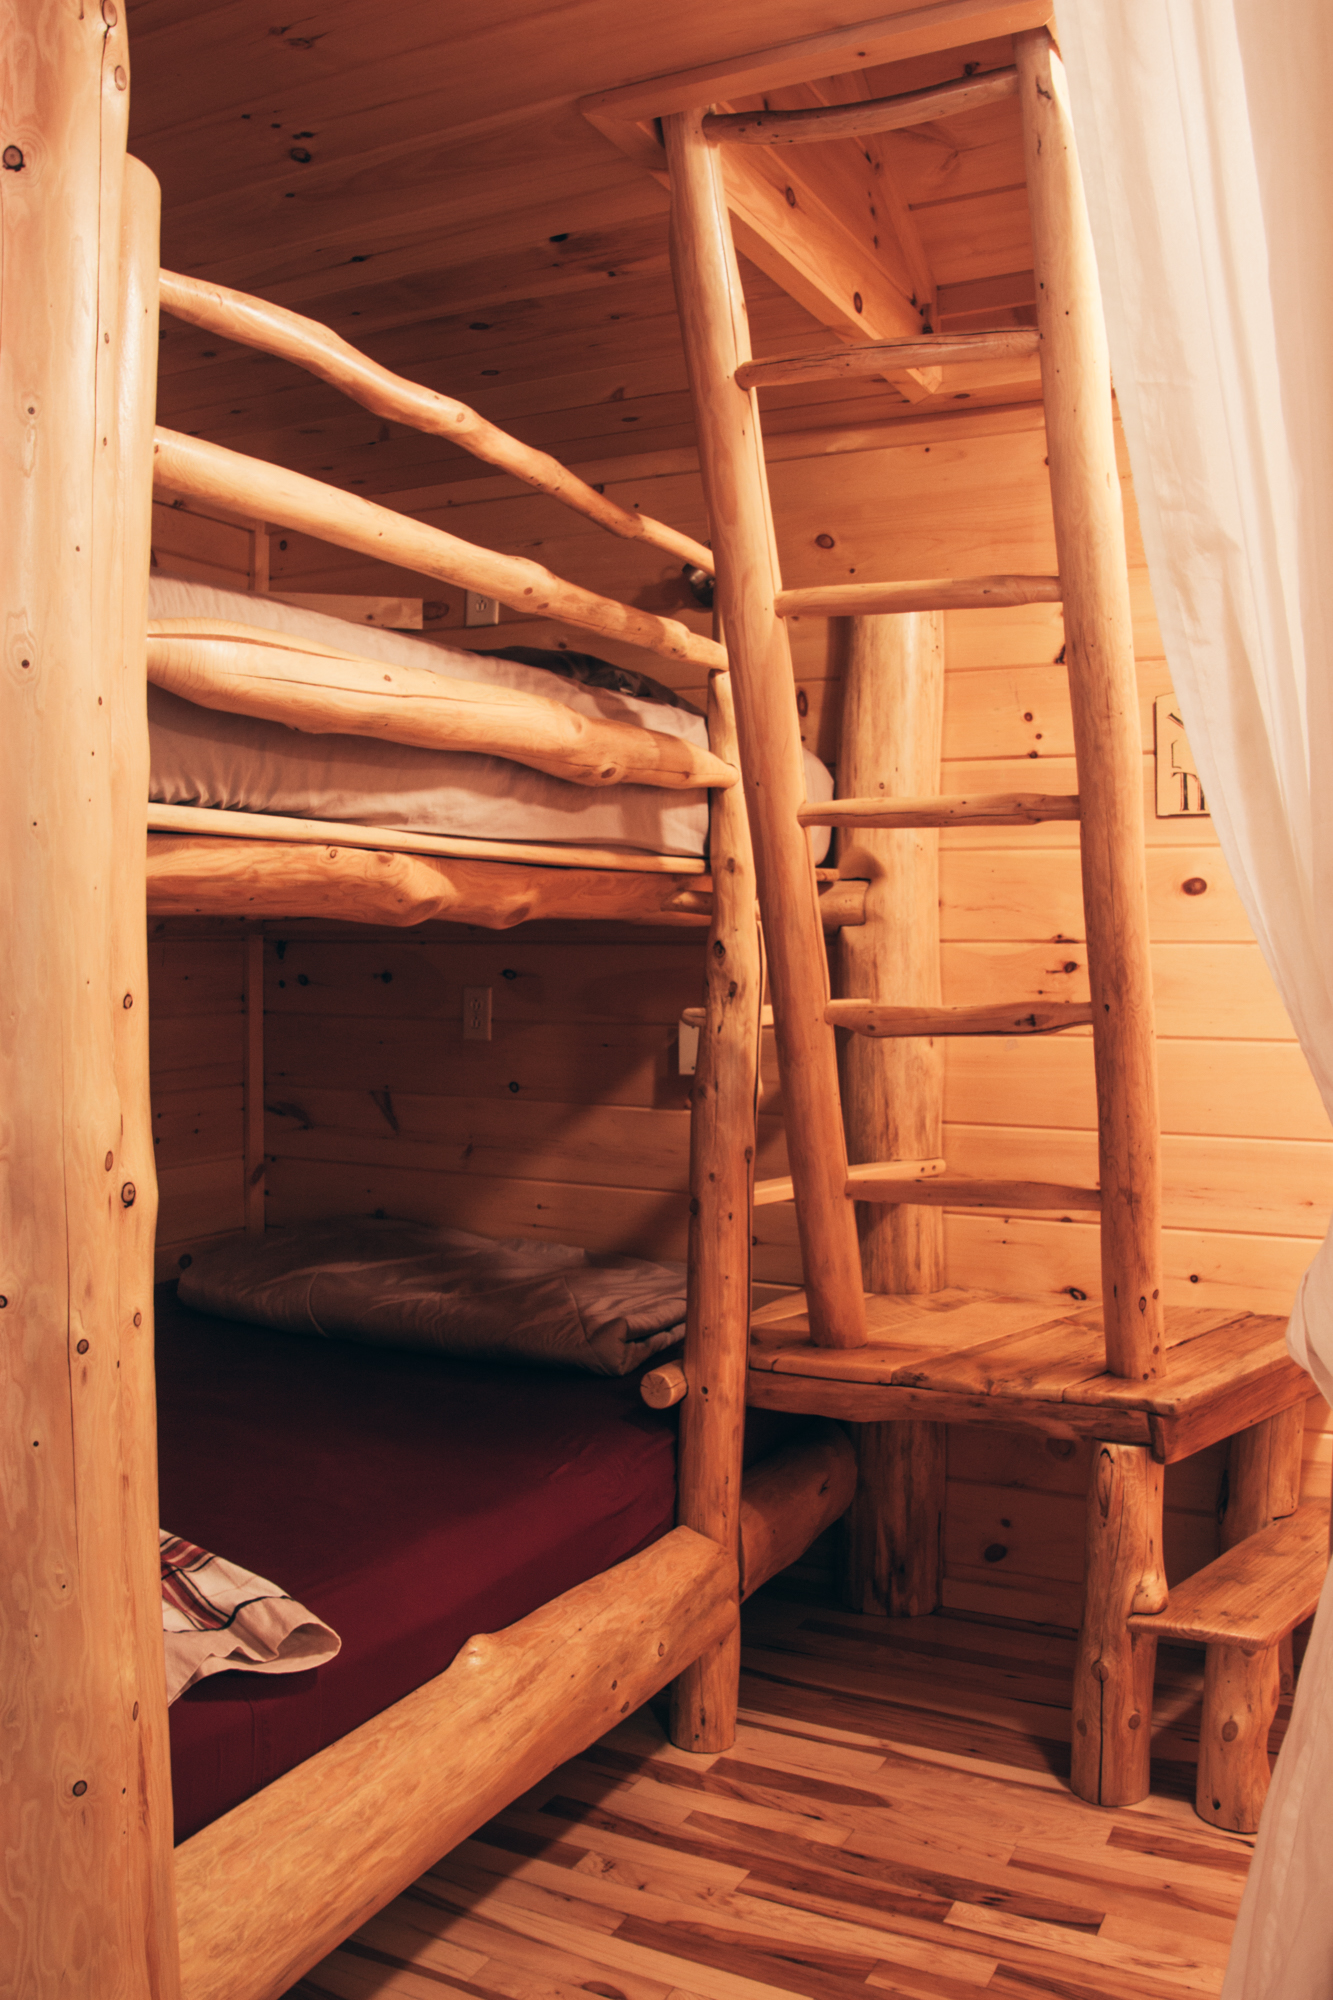 Wellnesste Lodge's cabin rentals are comfortable, clean and affordable.